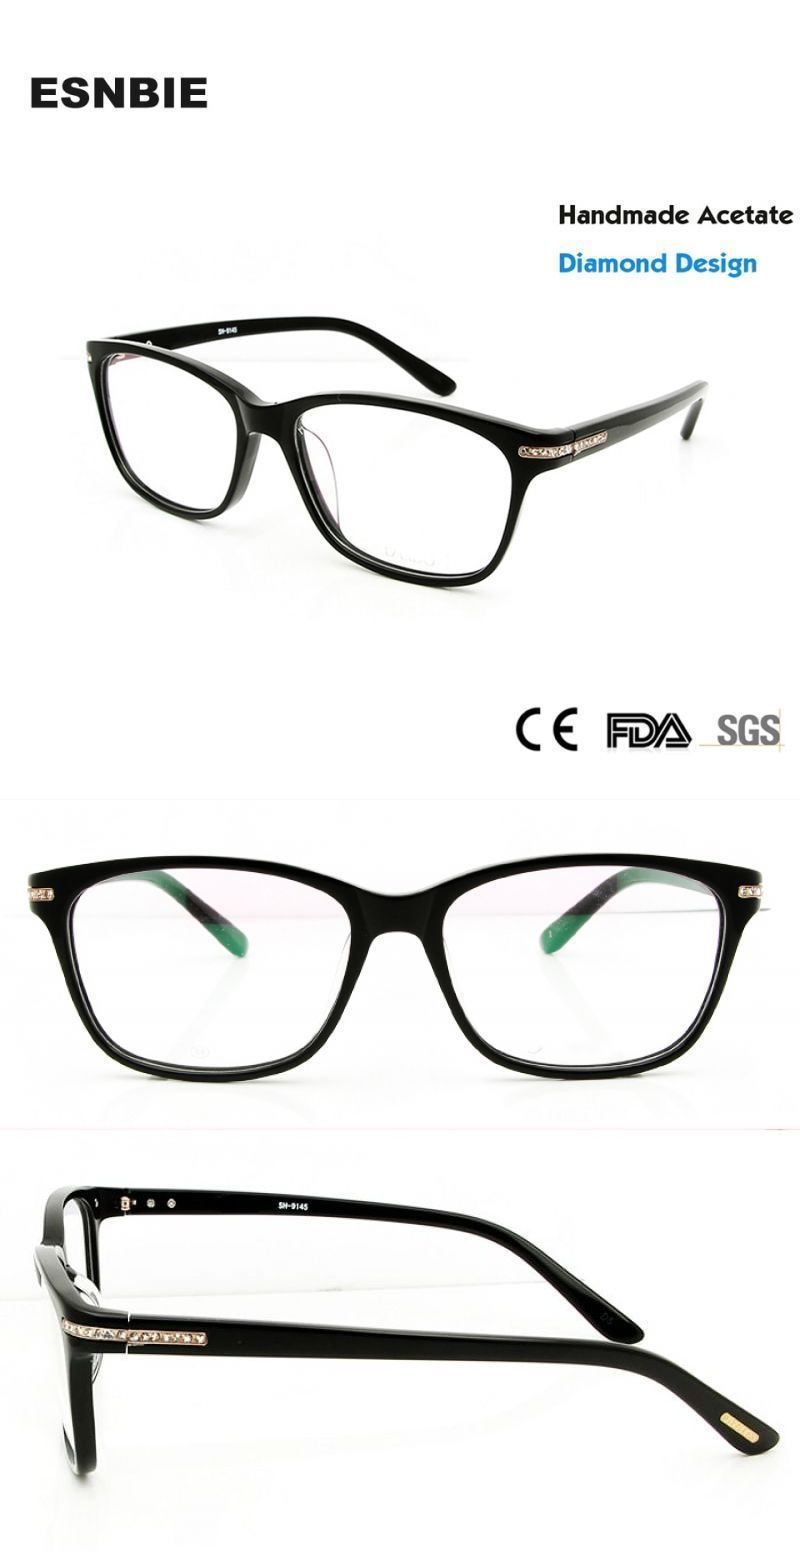 f604f5ee8c67 Fashion diamond luxury eye glasses frames for women myopia glasses optical  spectacle frame women brand design